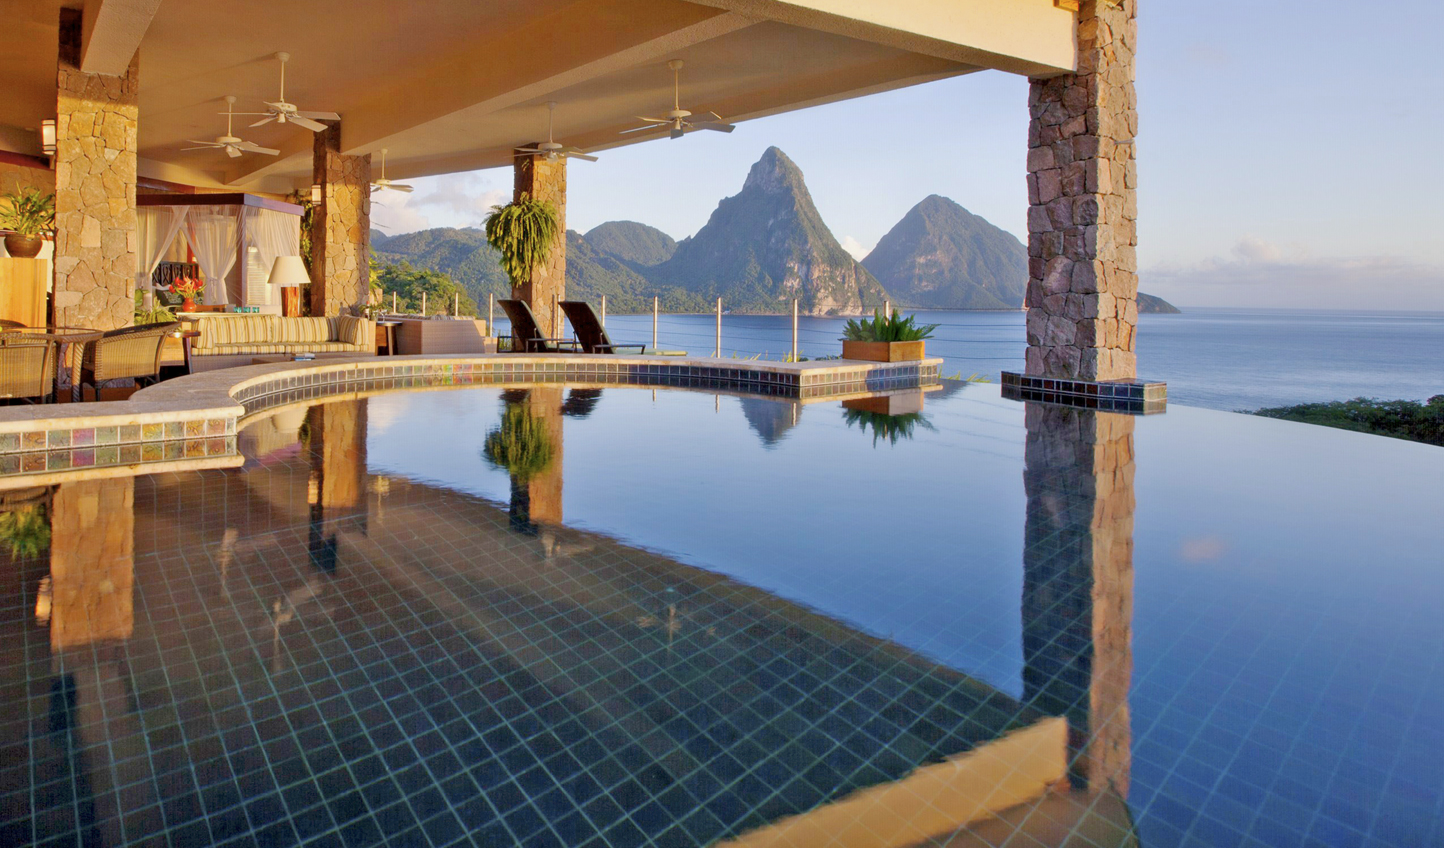 Picturesque Piton views from your private infinity pool